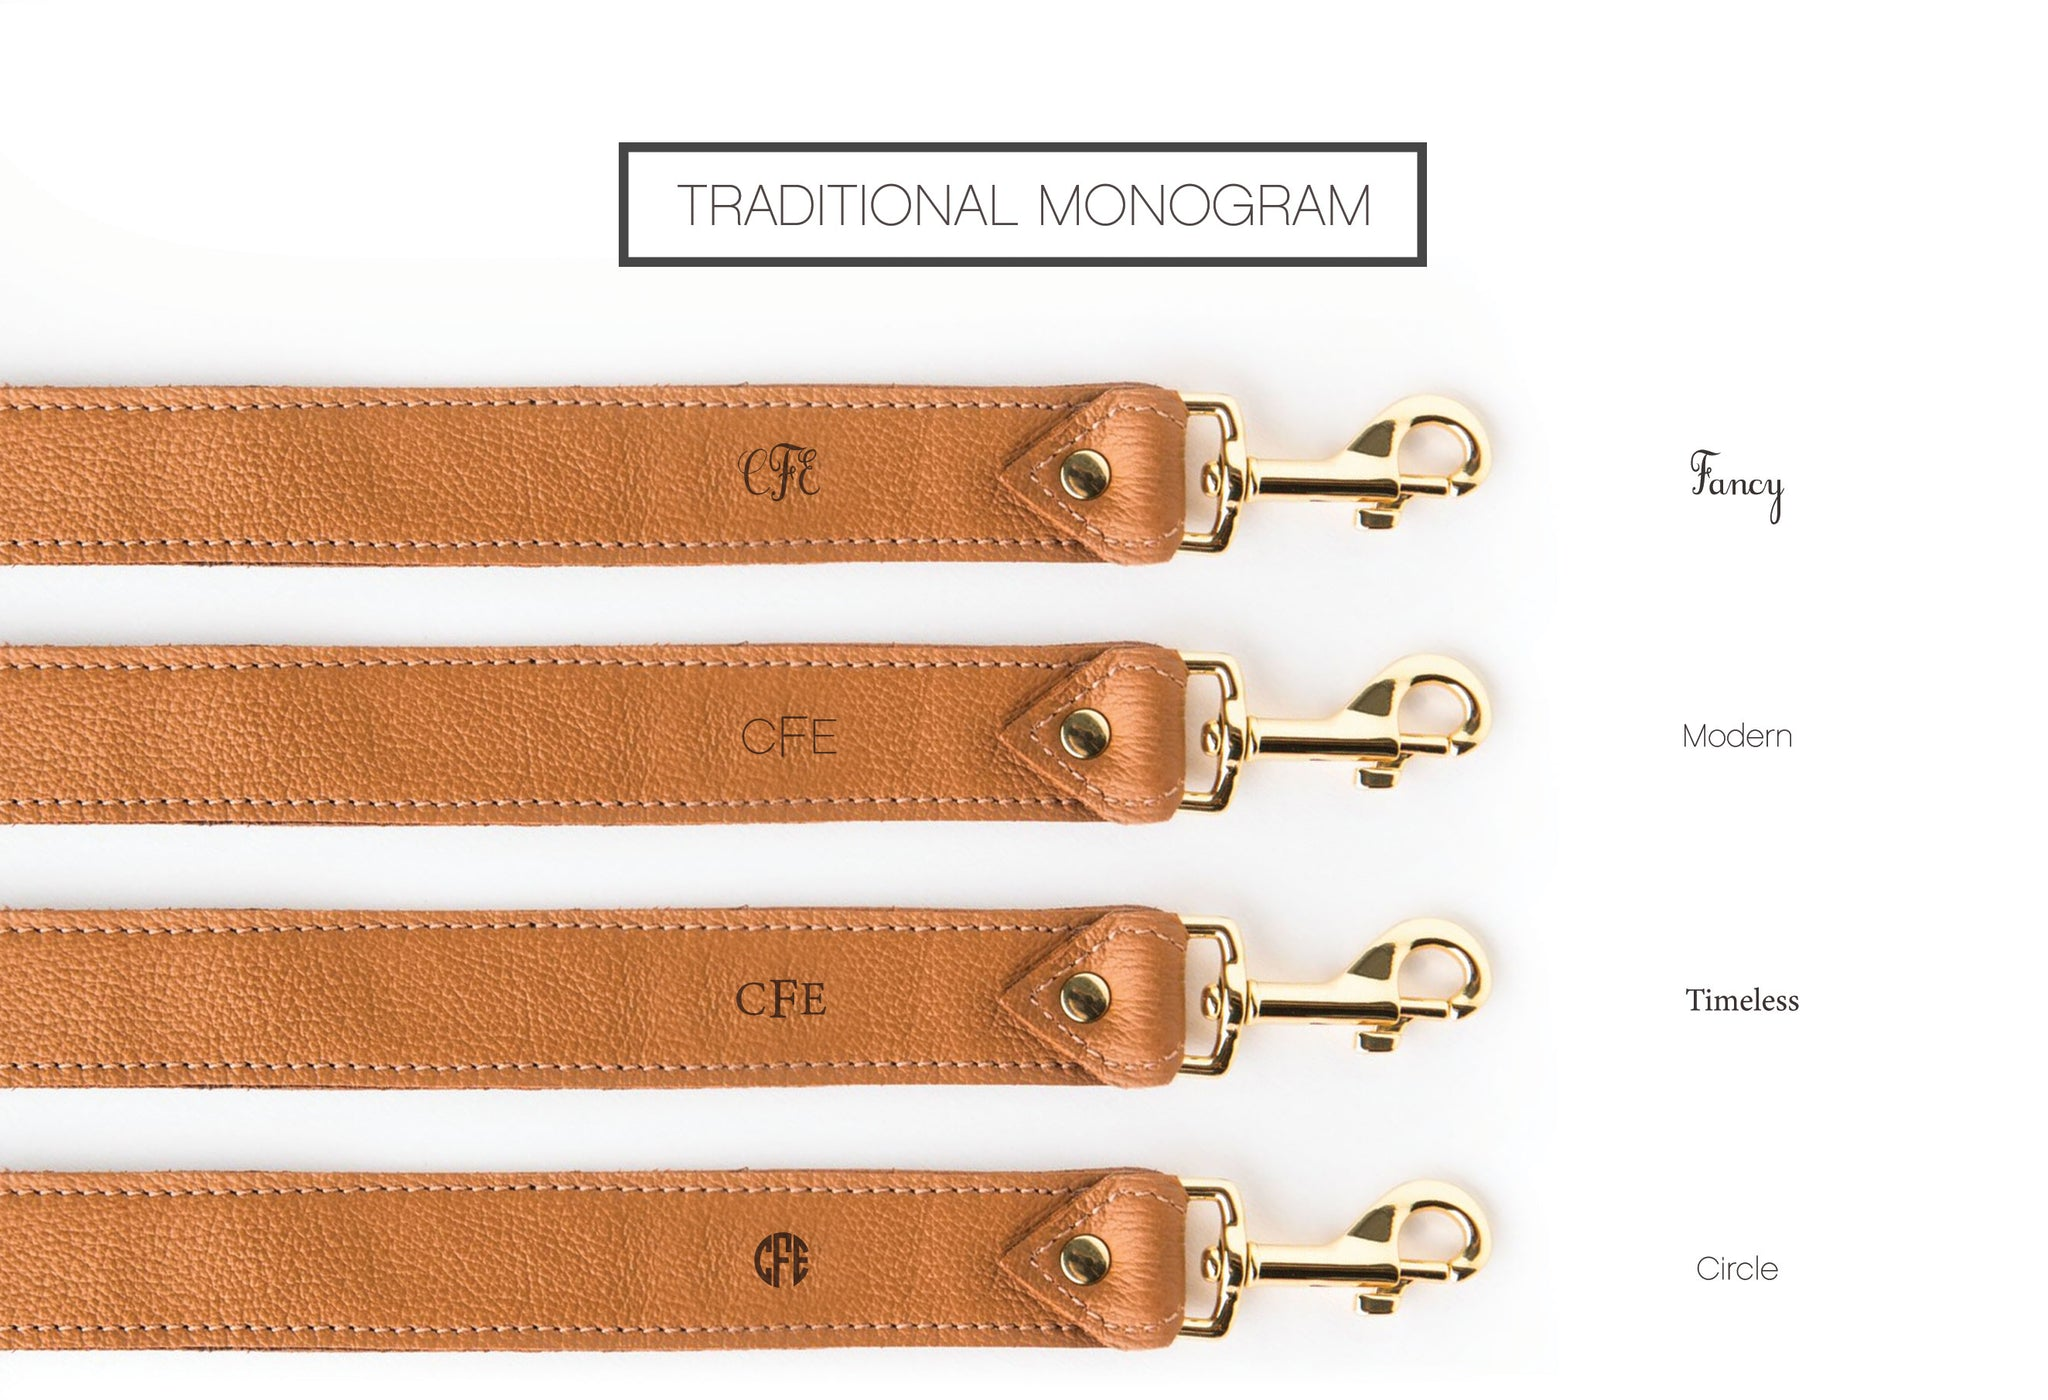 Designer Traditional Monogram Personalization Options